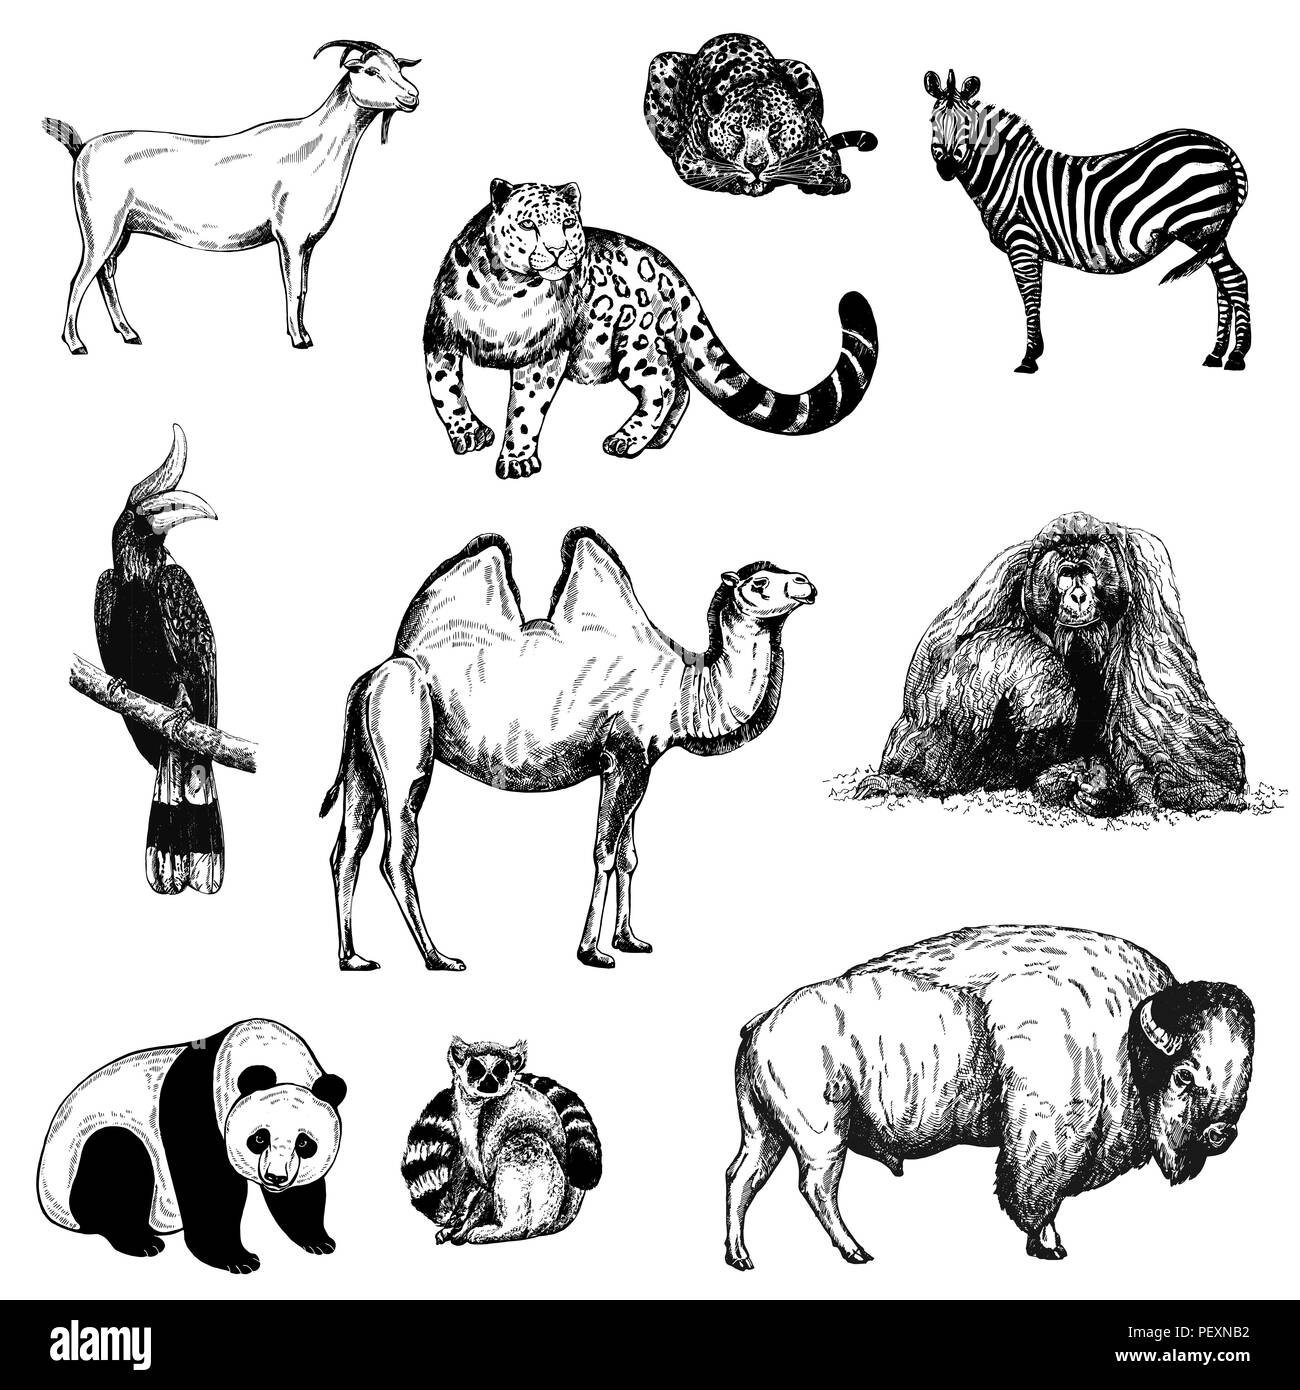 Set of hand drawn sketch style animals and birds isolated on white background. Vector illustration. - Stock Vector